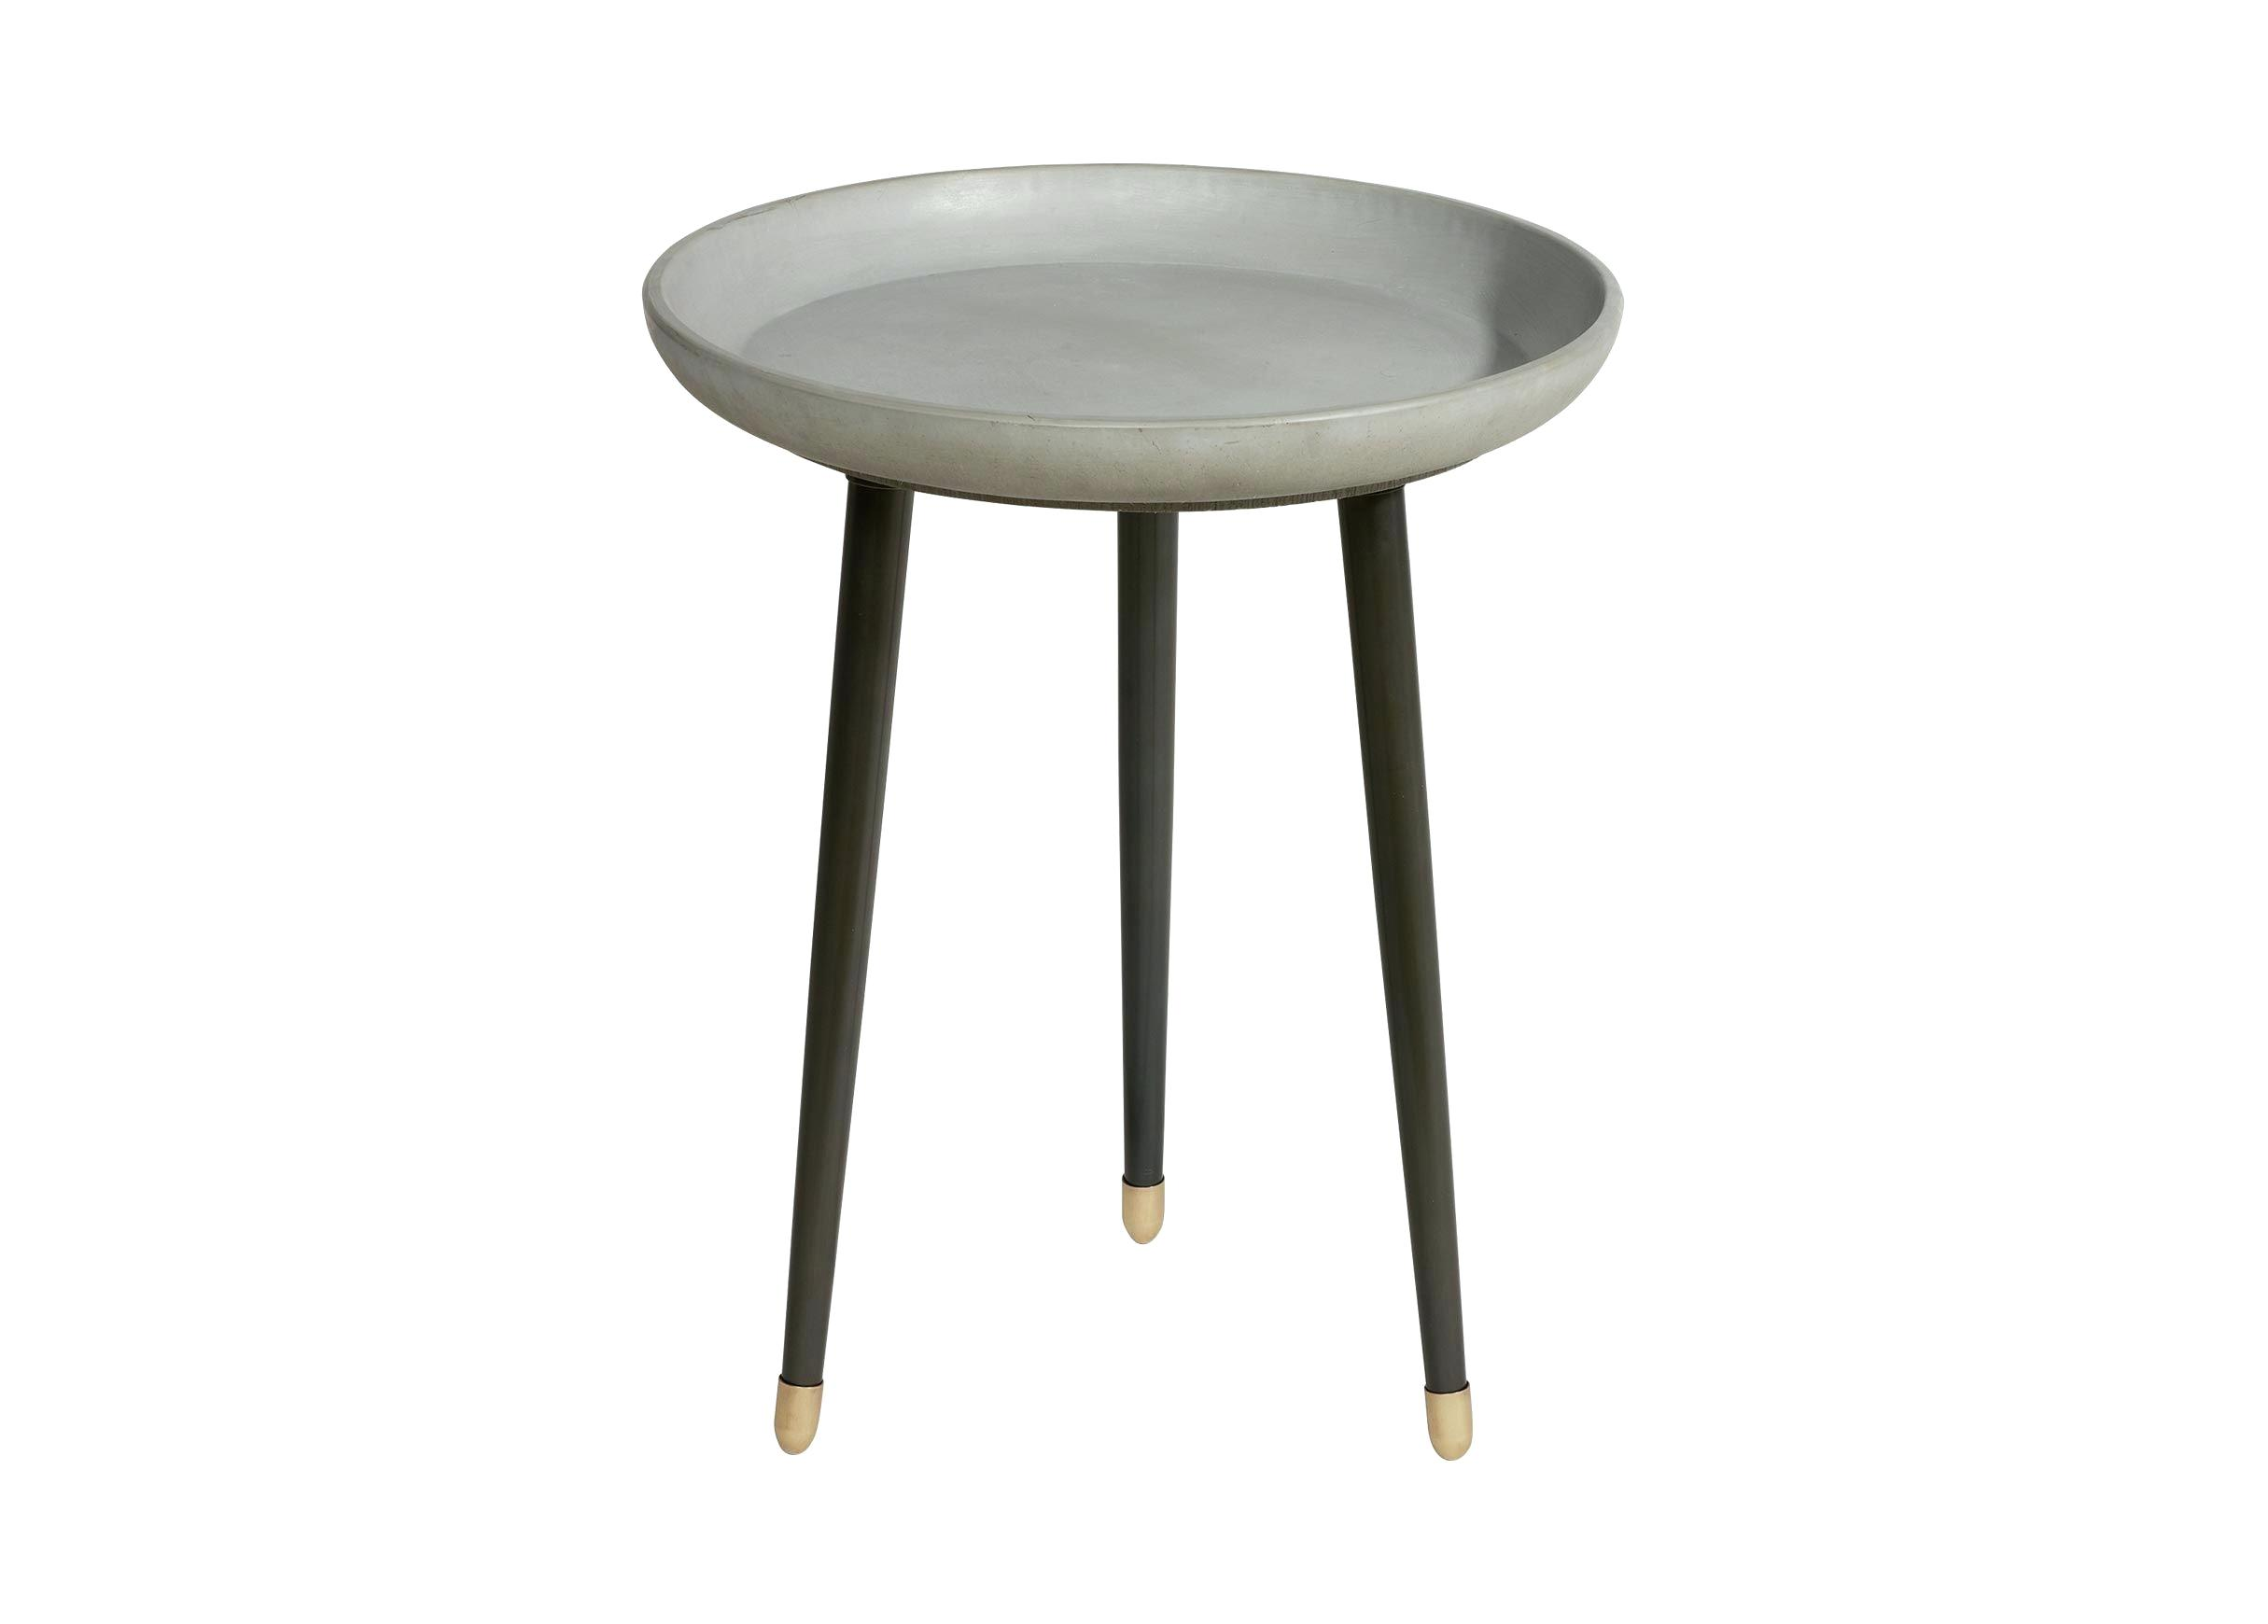 metal tray accent table round folding white top end coffee grey side mercer tables kitchen delectable full size glass nesting set ikea play black storage cabinet summer outdoor